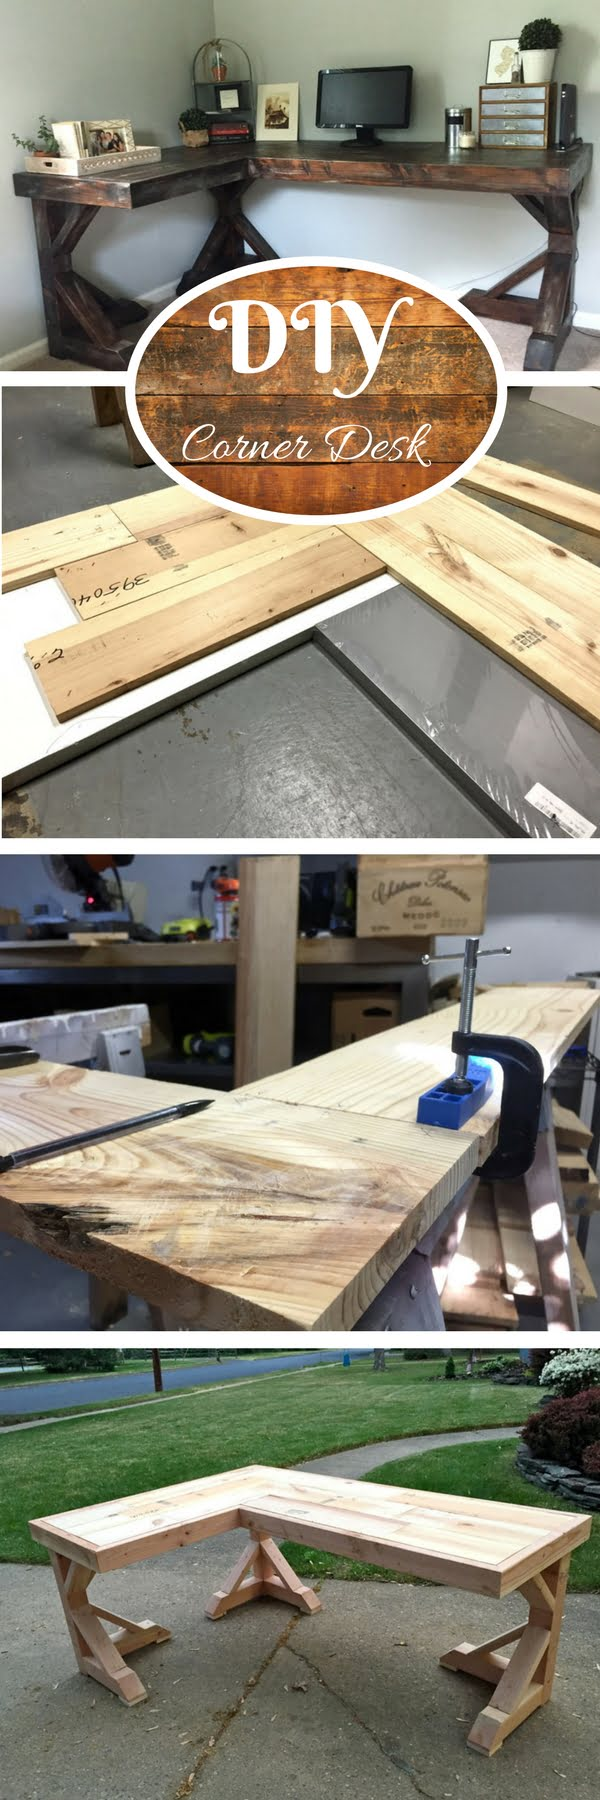 Check out the tutorial how to build a DIY corner desk